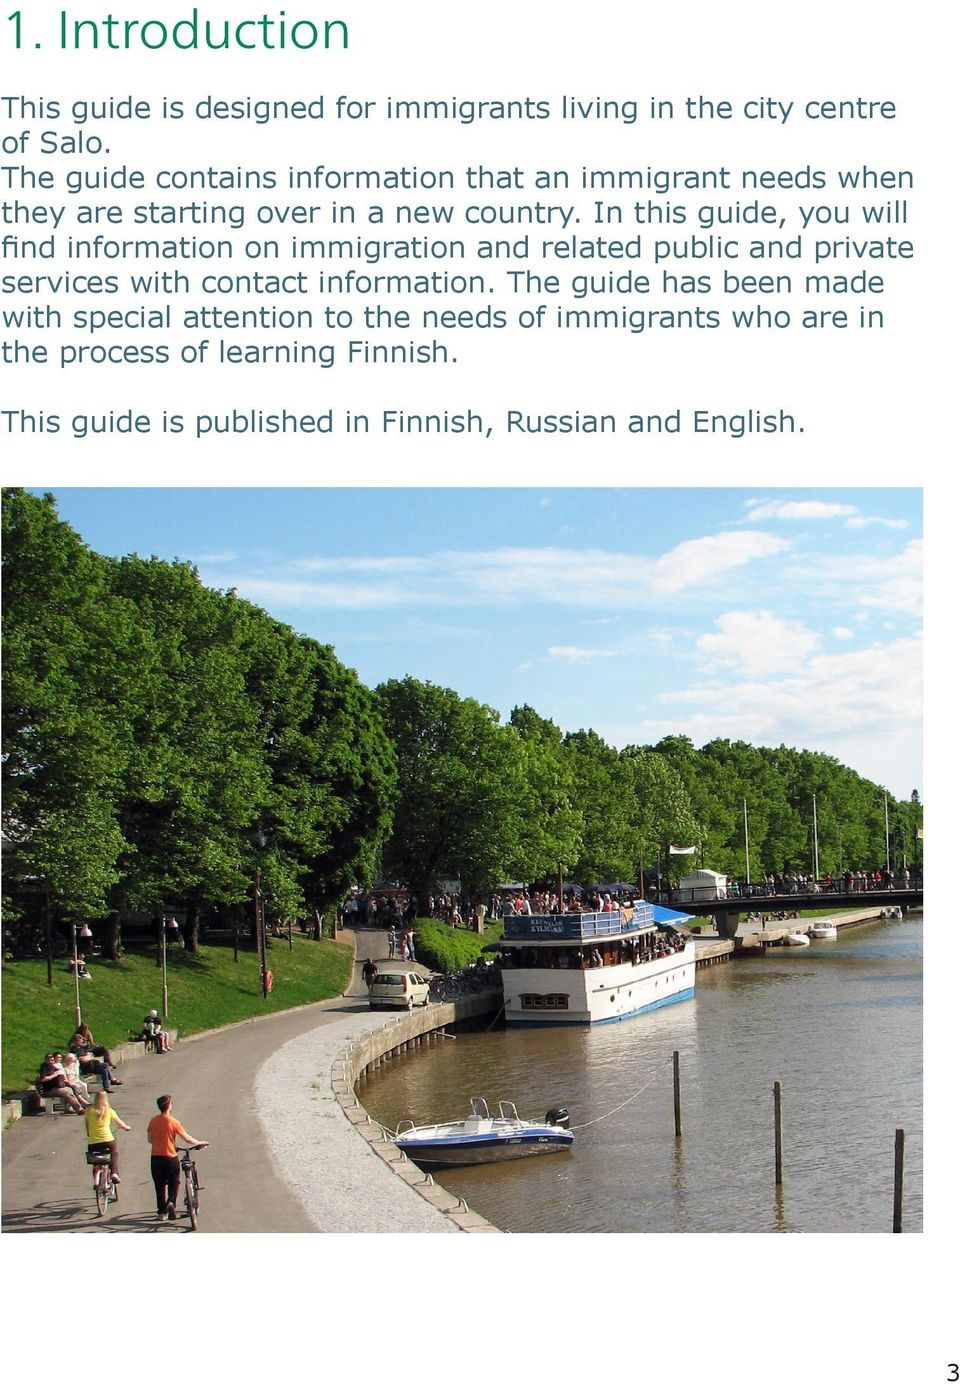 In this guide, you will find information on immigration and related public and private services with contact information.